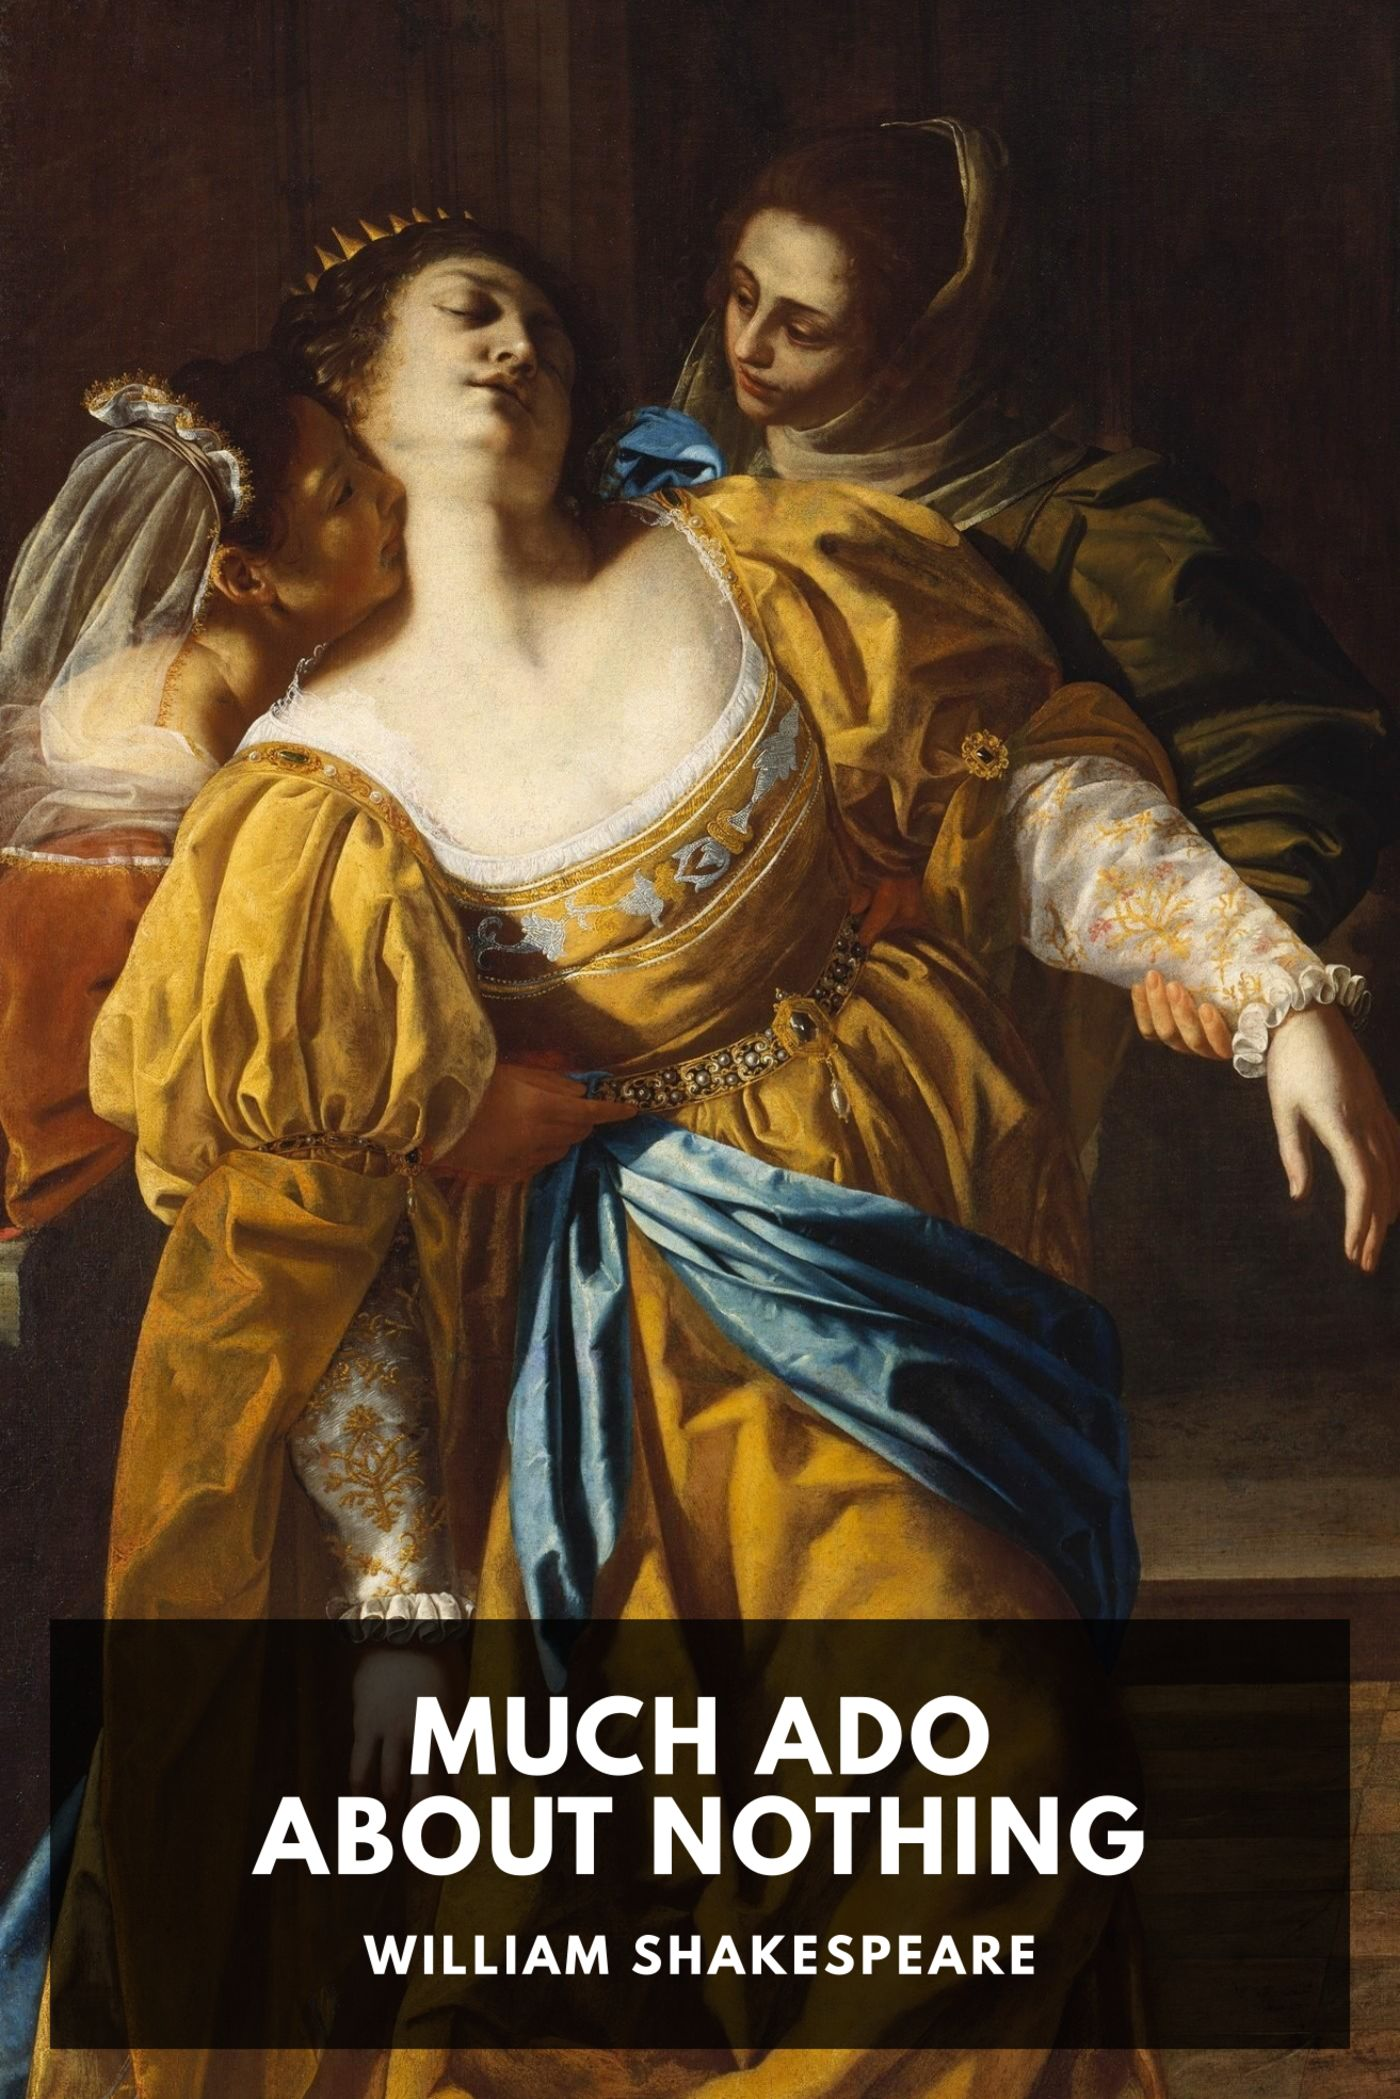 Much Ado About Nothing Poster v2 by bluemoonpriestess on